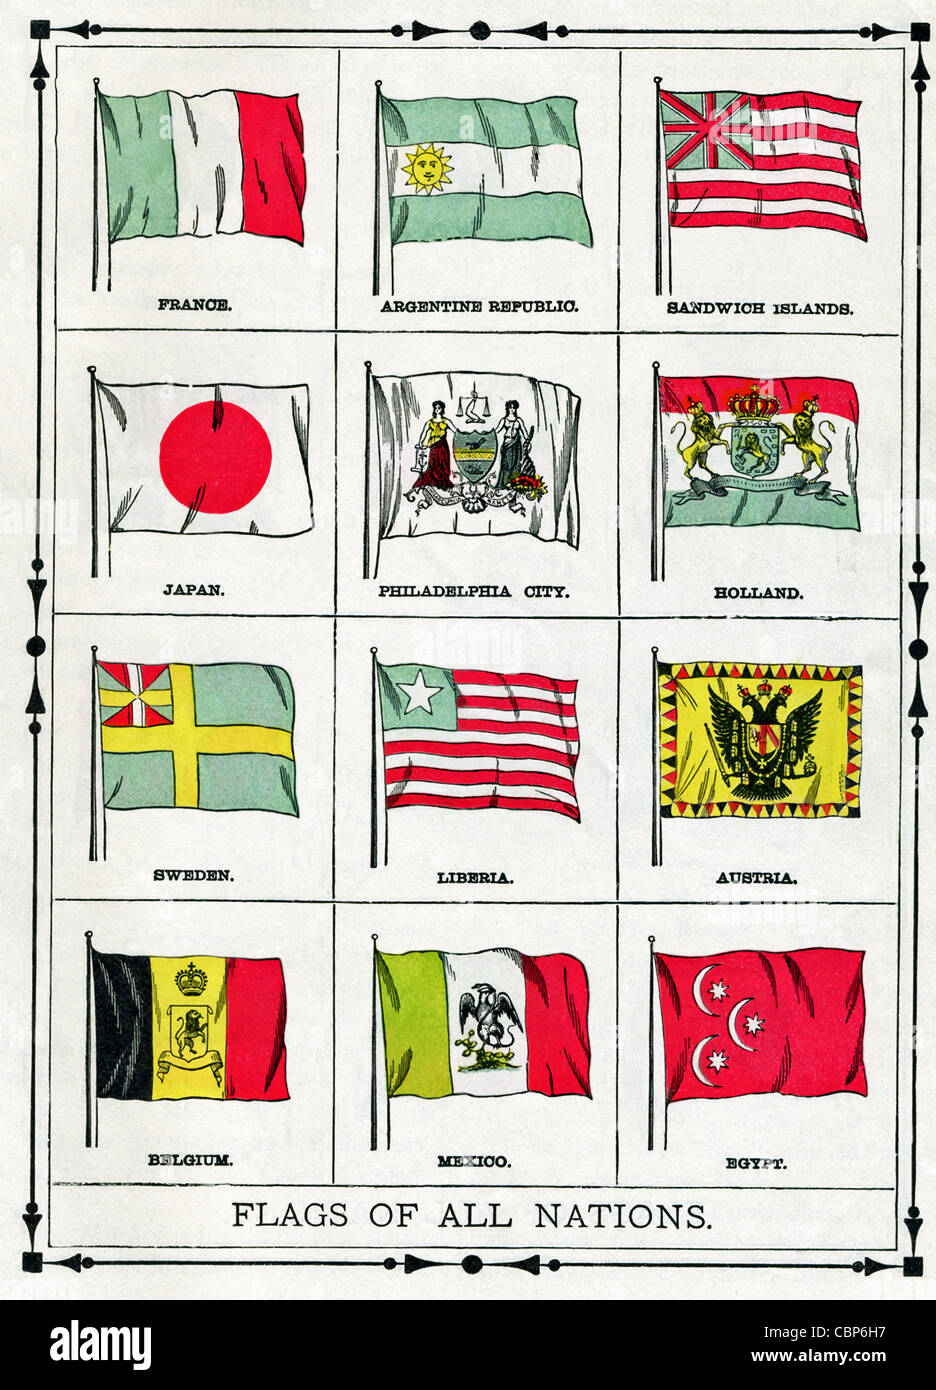 The flags shown in this illustration were current in 1896. They include France, Argentine Republic, Sandwich Islands, - Stock Image